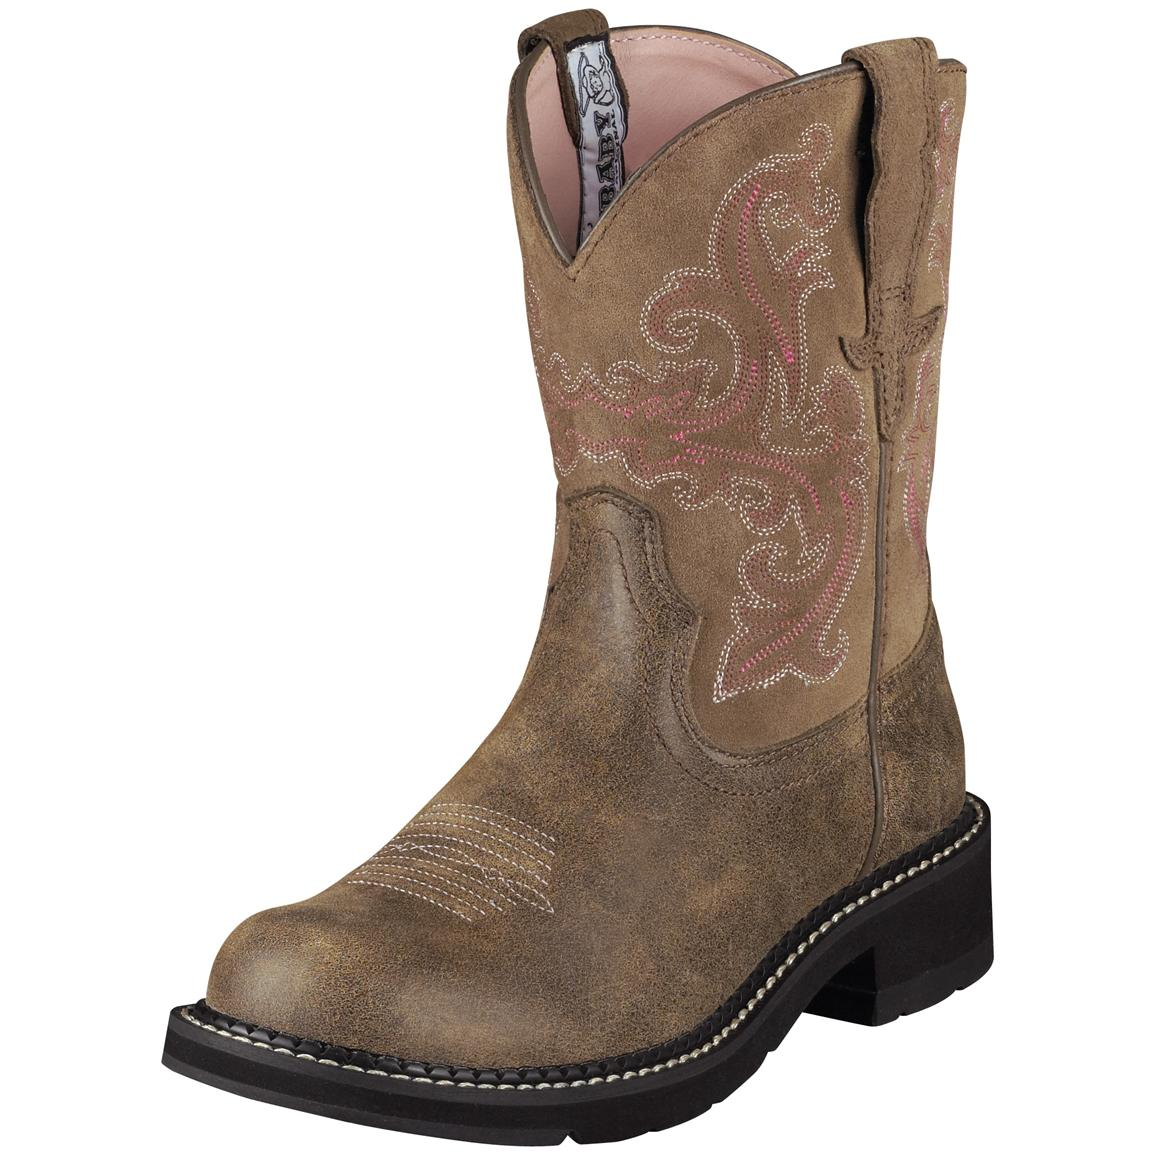 Women's Ariat® 8 inch Fatbaby II Western Boots, Brown Bomber